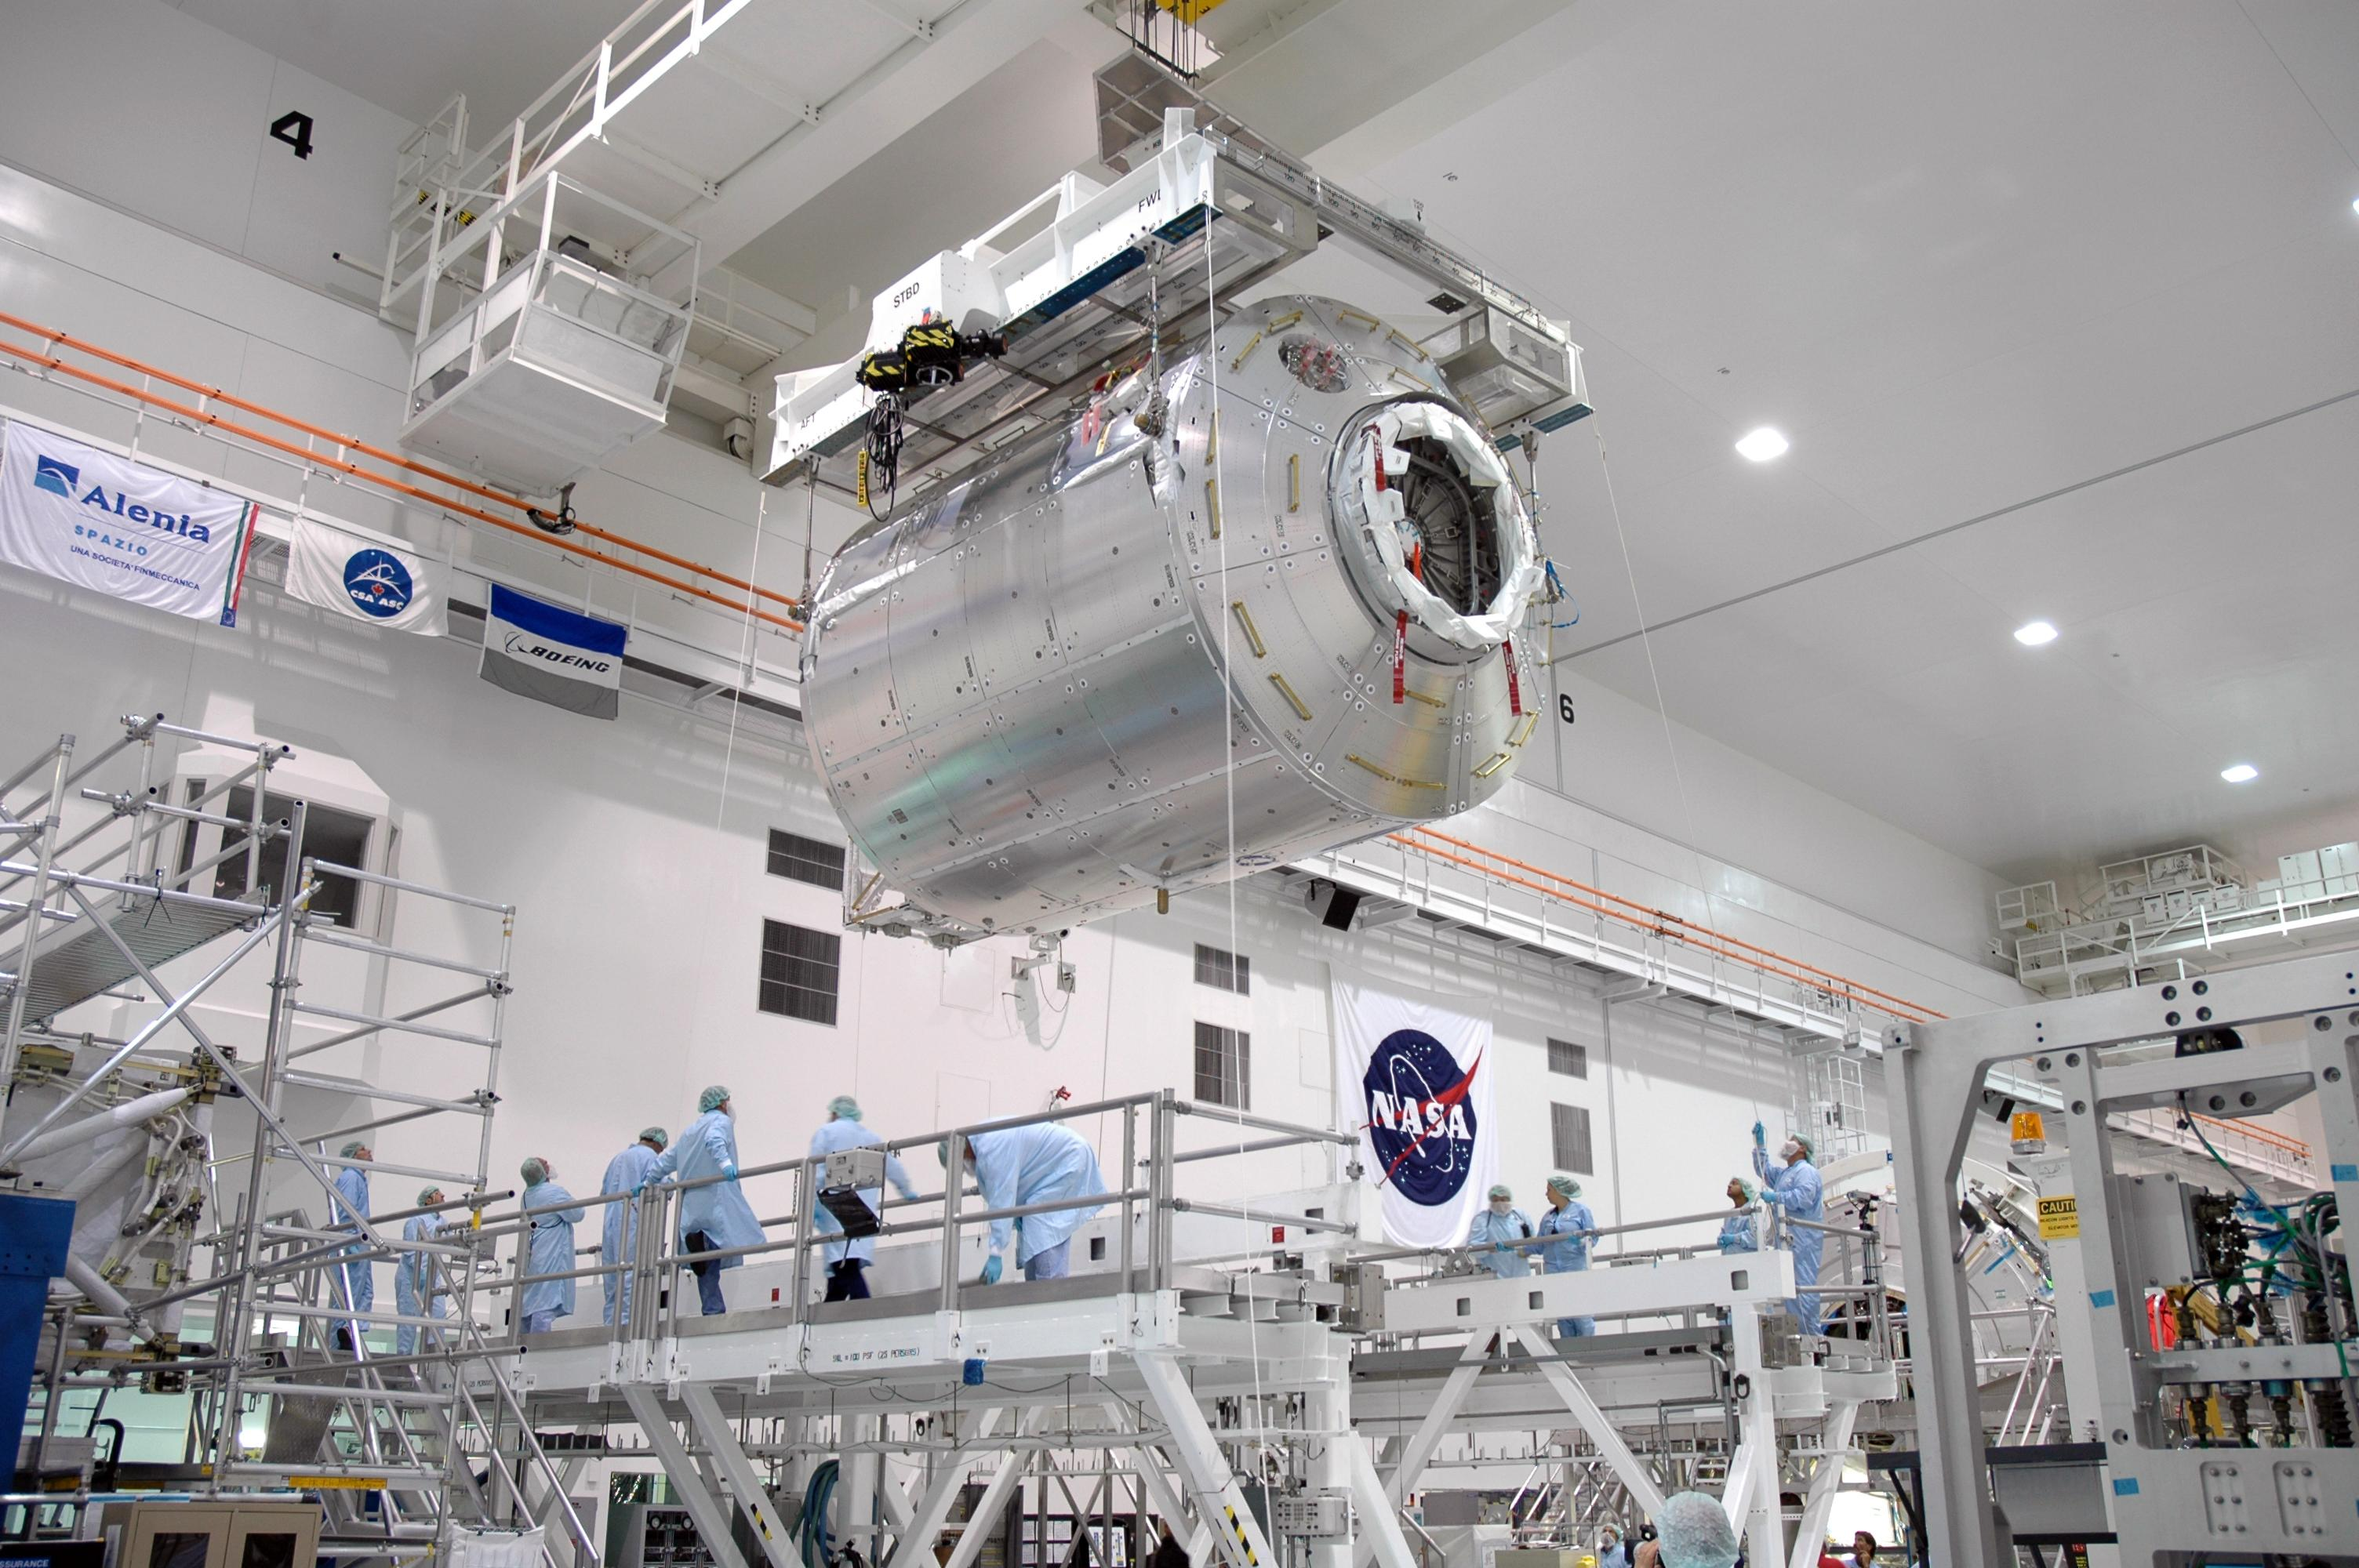 nasa space lab-#8